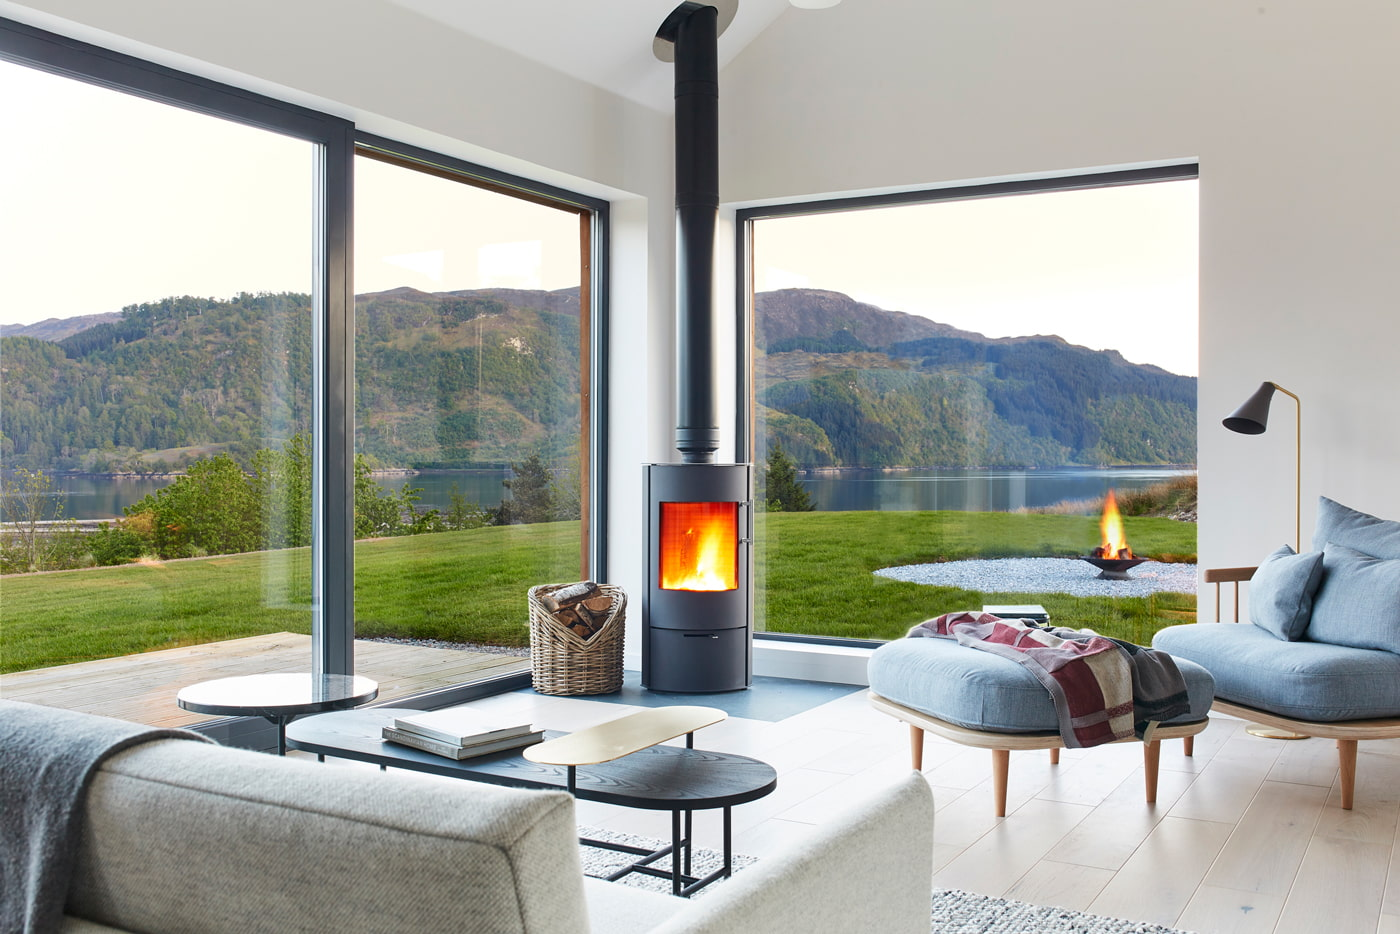 Boutique self-catering holiday home in the Northwest Highlands